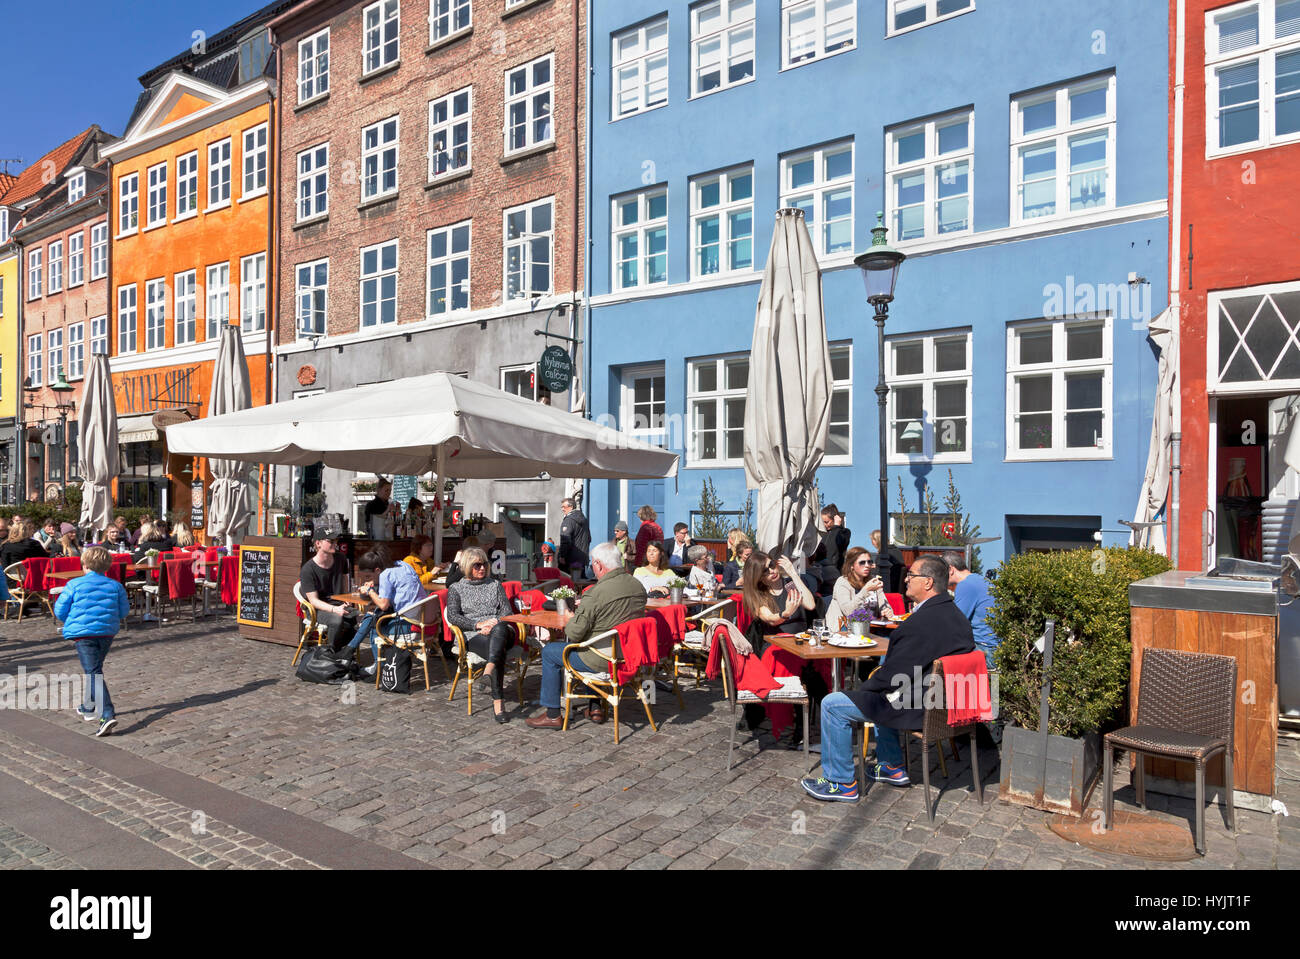 The historic waterfront restaurants in Nyhavn, Copenhagen, Denmark, attract many Copenhageners and tourists on a - Stock Image